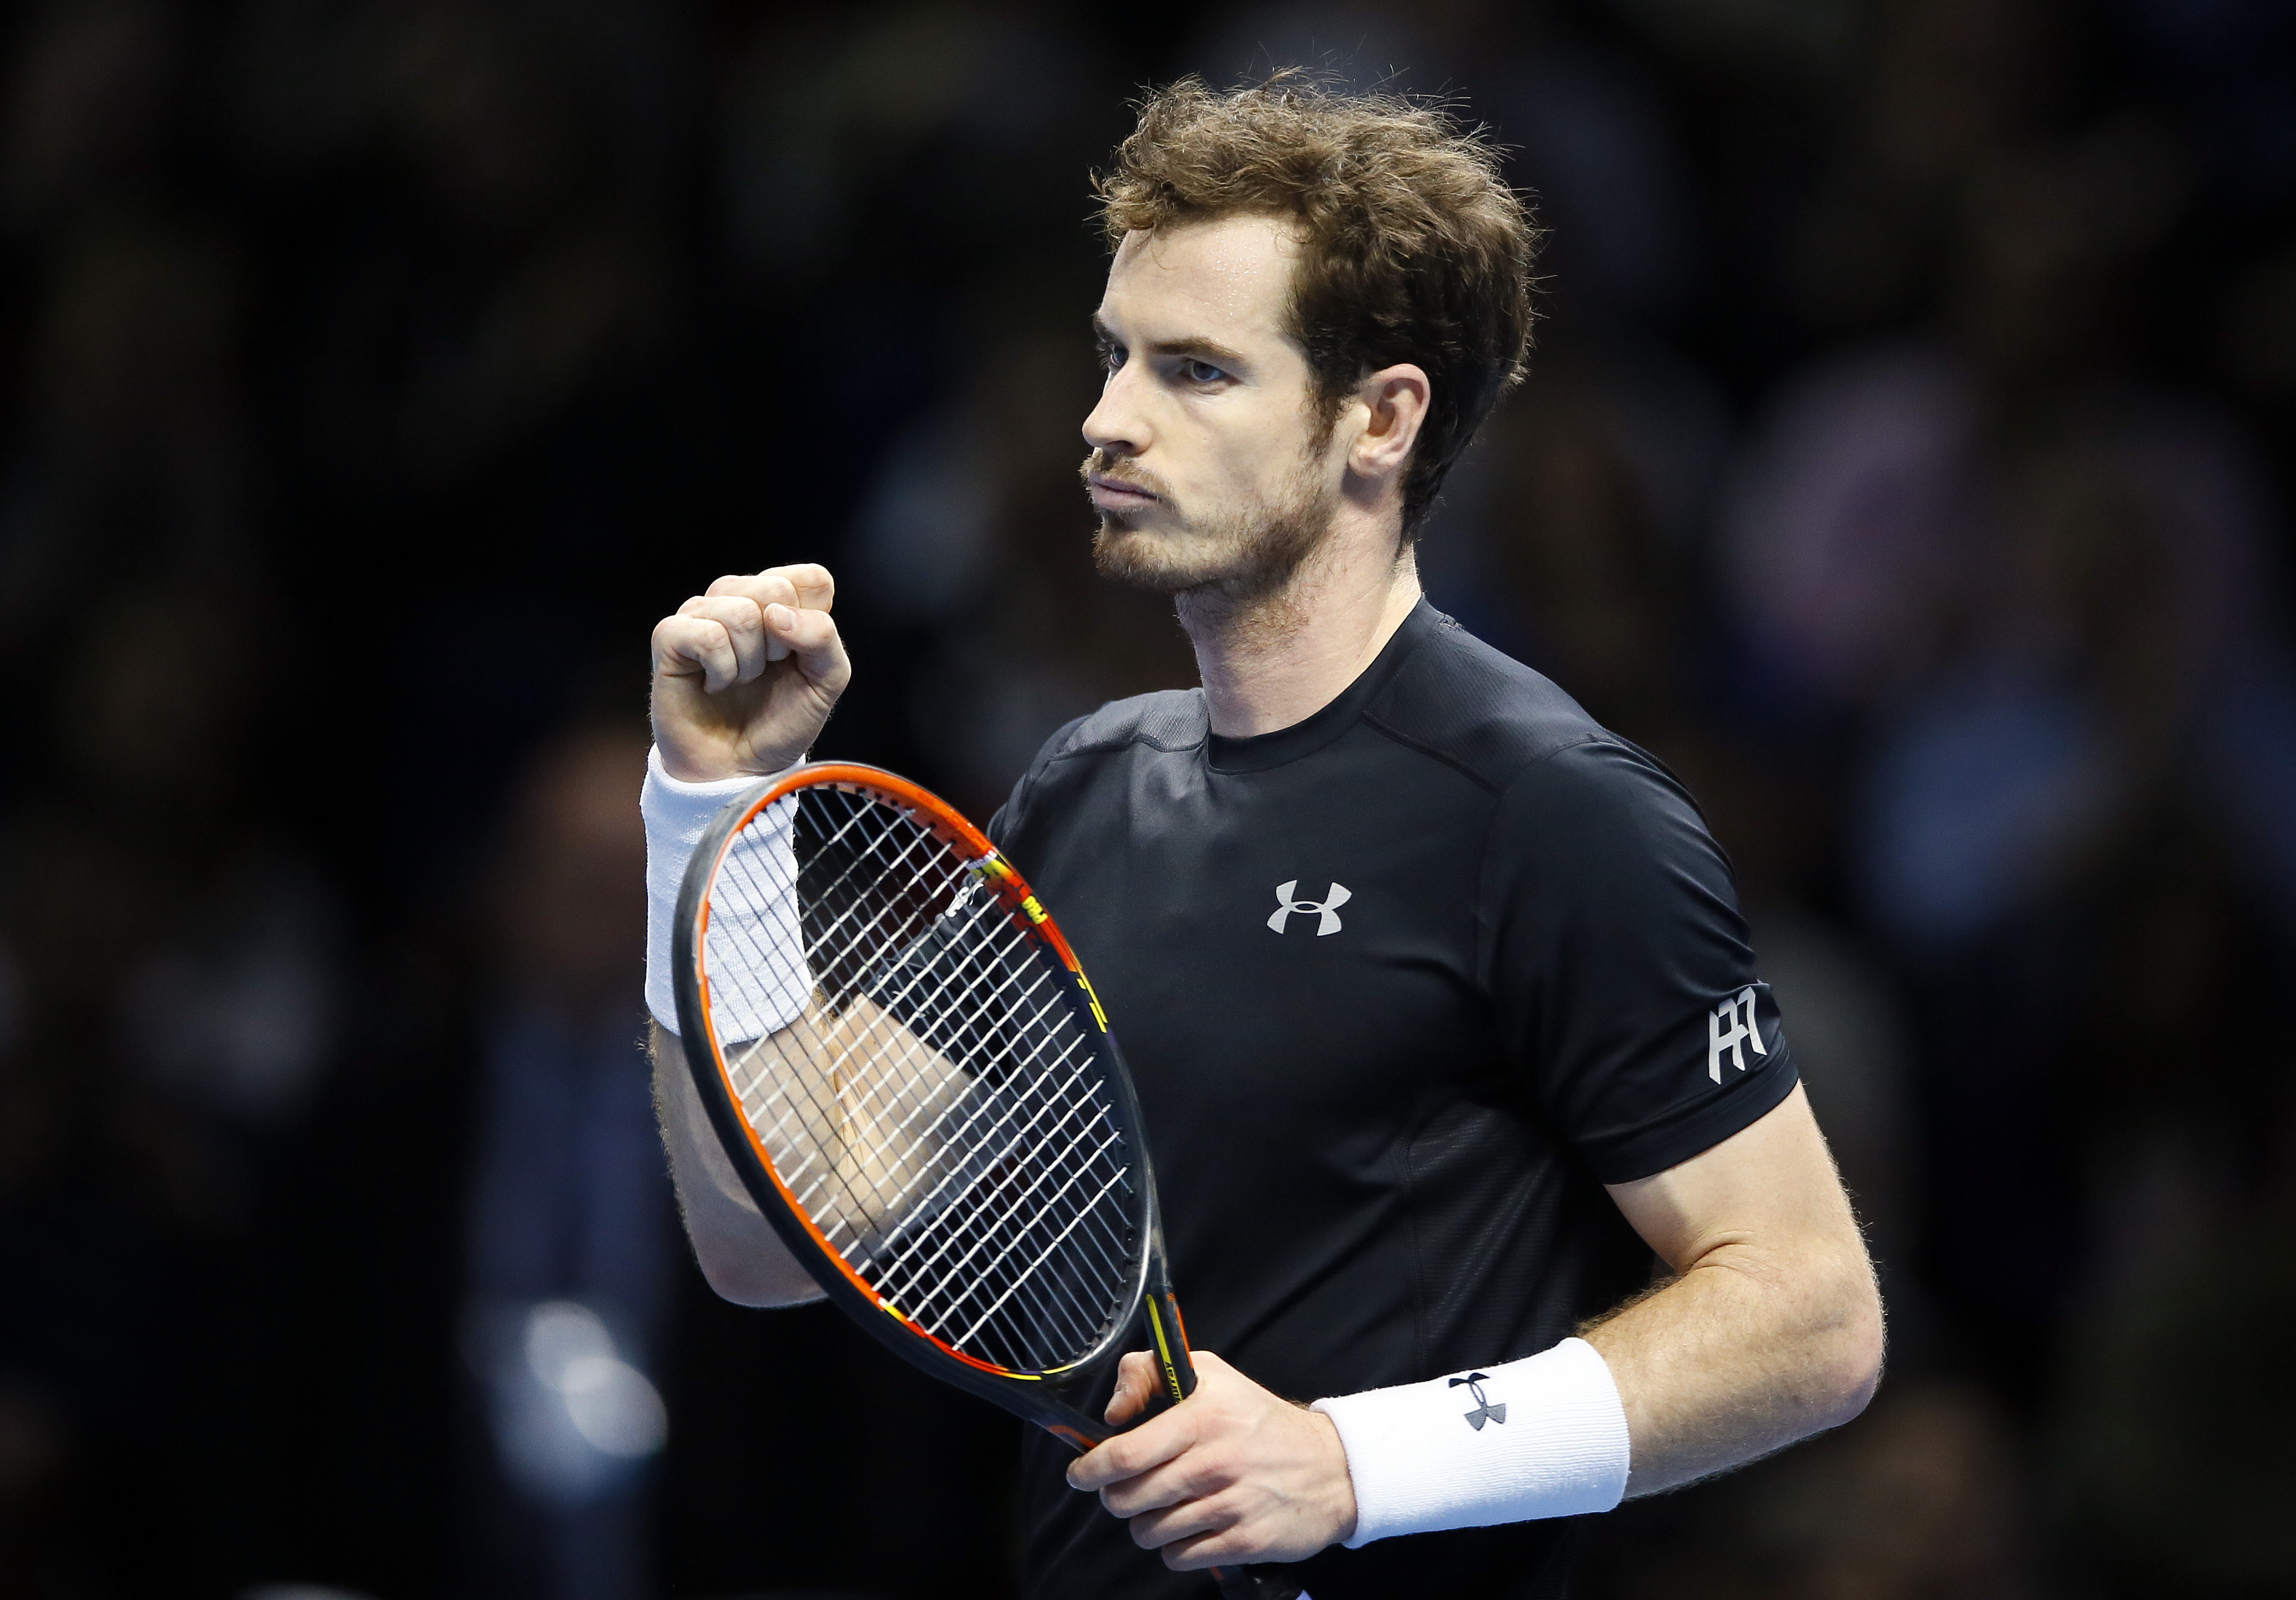 Andy Murray of Britain celebrates after winning match point against David Ferrer of Spain during their singles tennis match at the ATP World Tour Finals at the O2 Arena in London, Monday, Nov. 16, 2015. (AP Photo/Kirsty Wigglesworth)